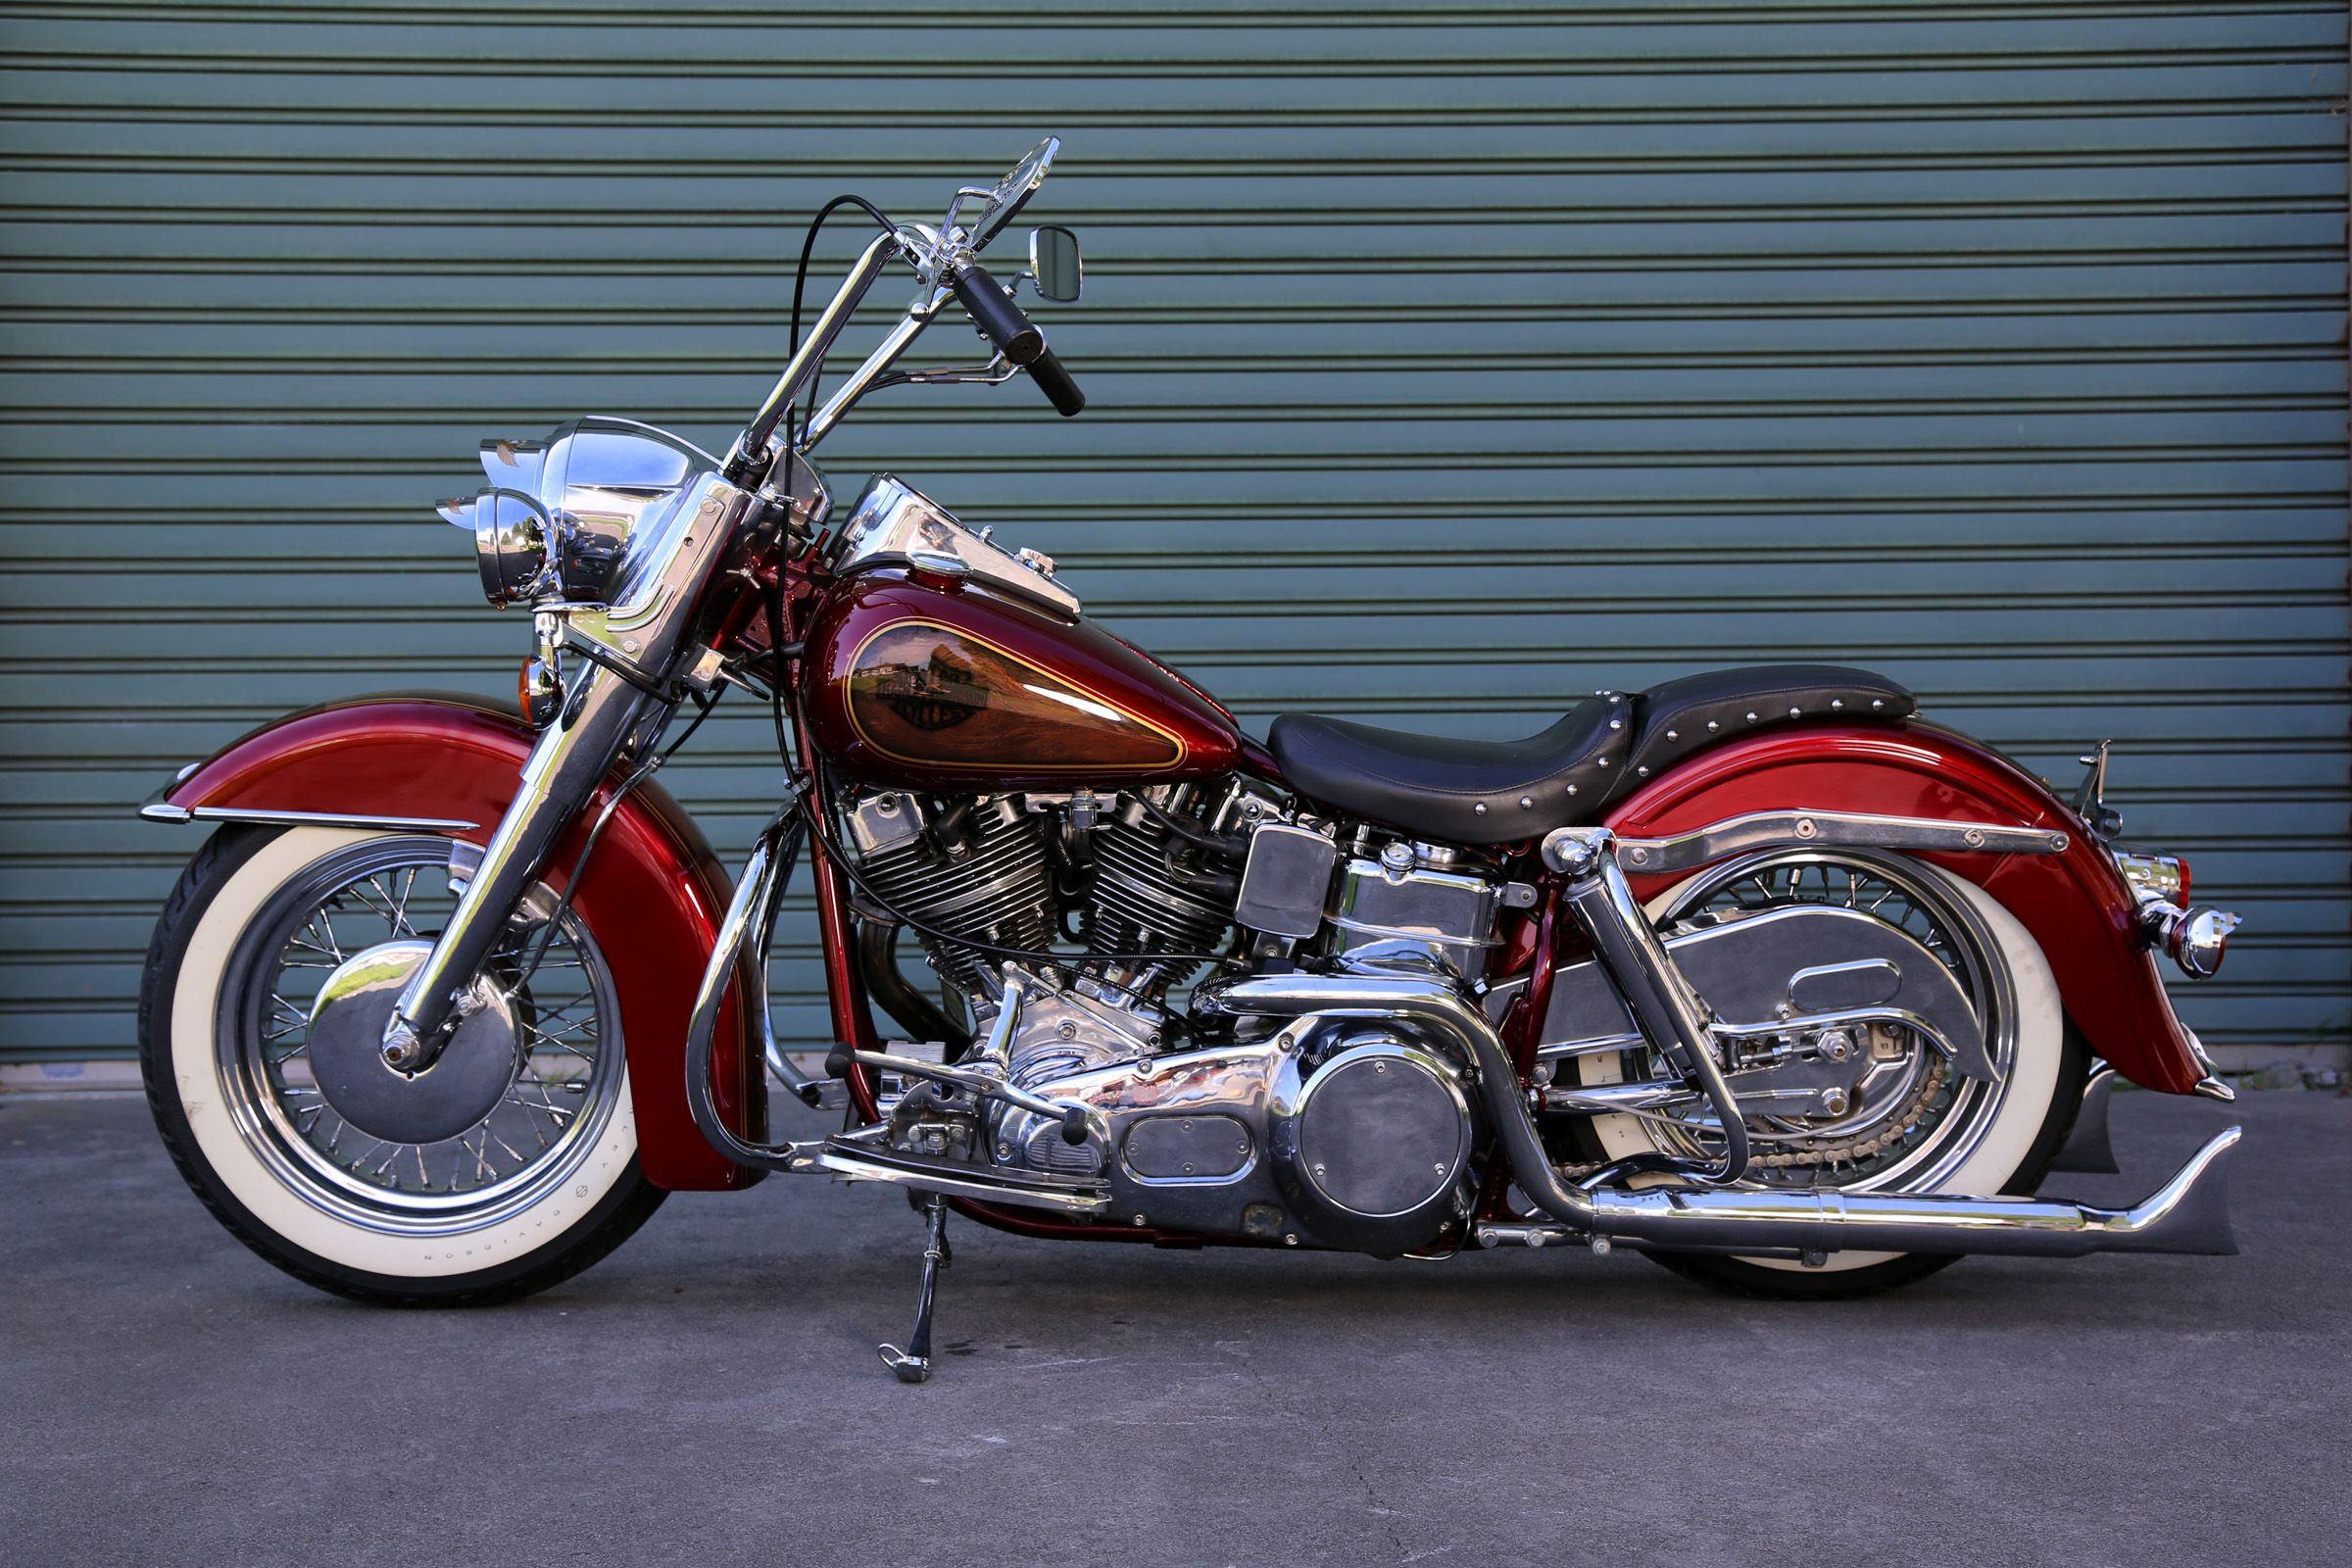 4110bb4582fd5237af73b30f186d68ad 1970 harley davidson flh red cls jpg (2400�1600) american 1972 Harley FLH at webbmarketing.co